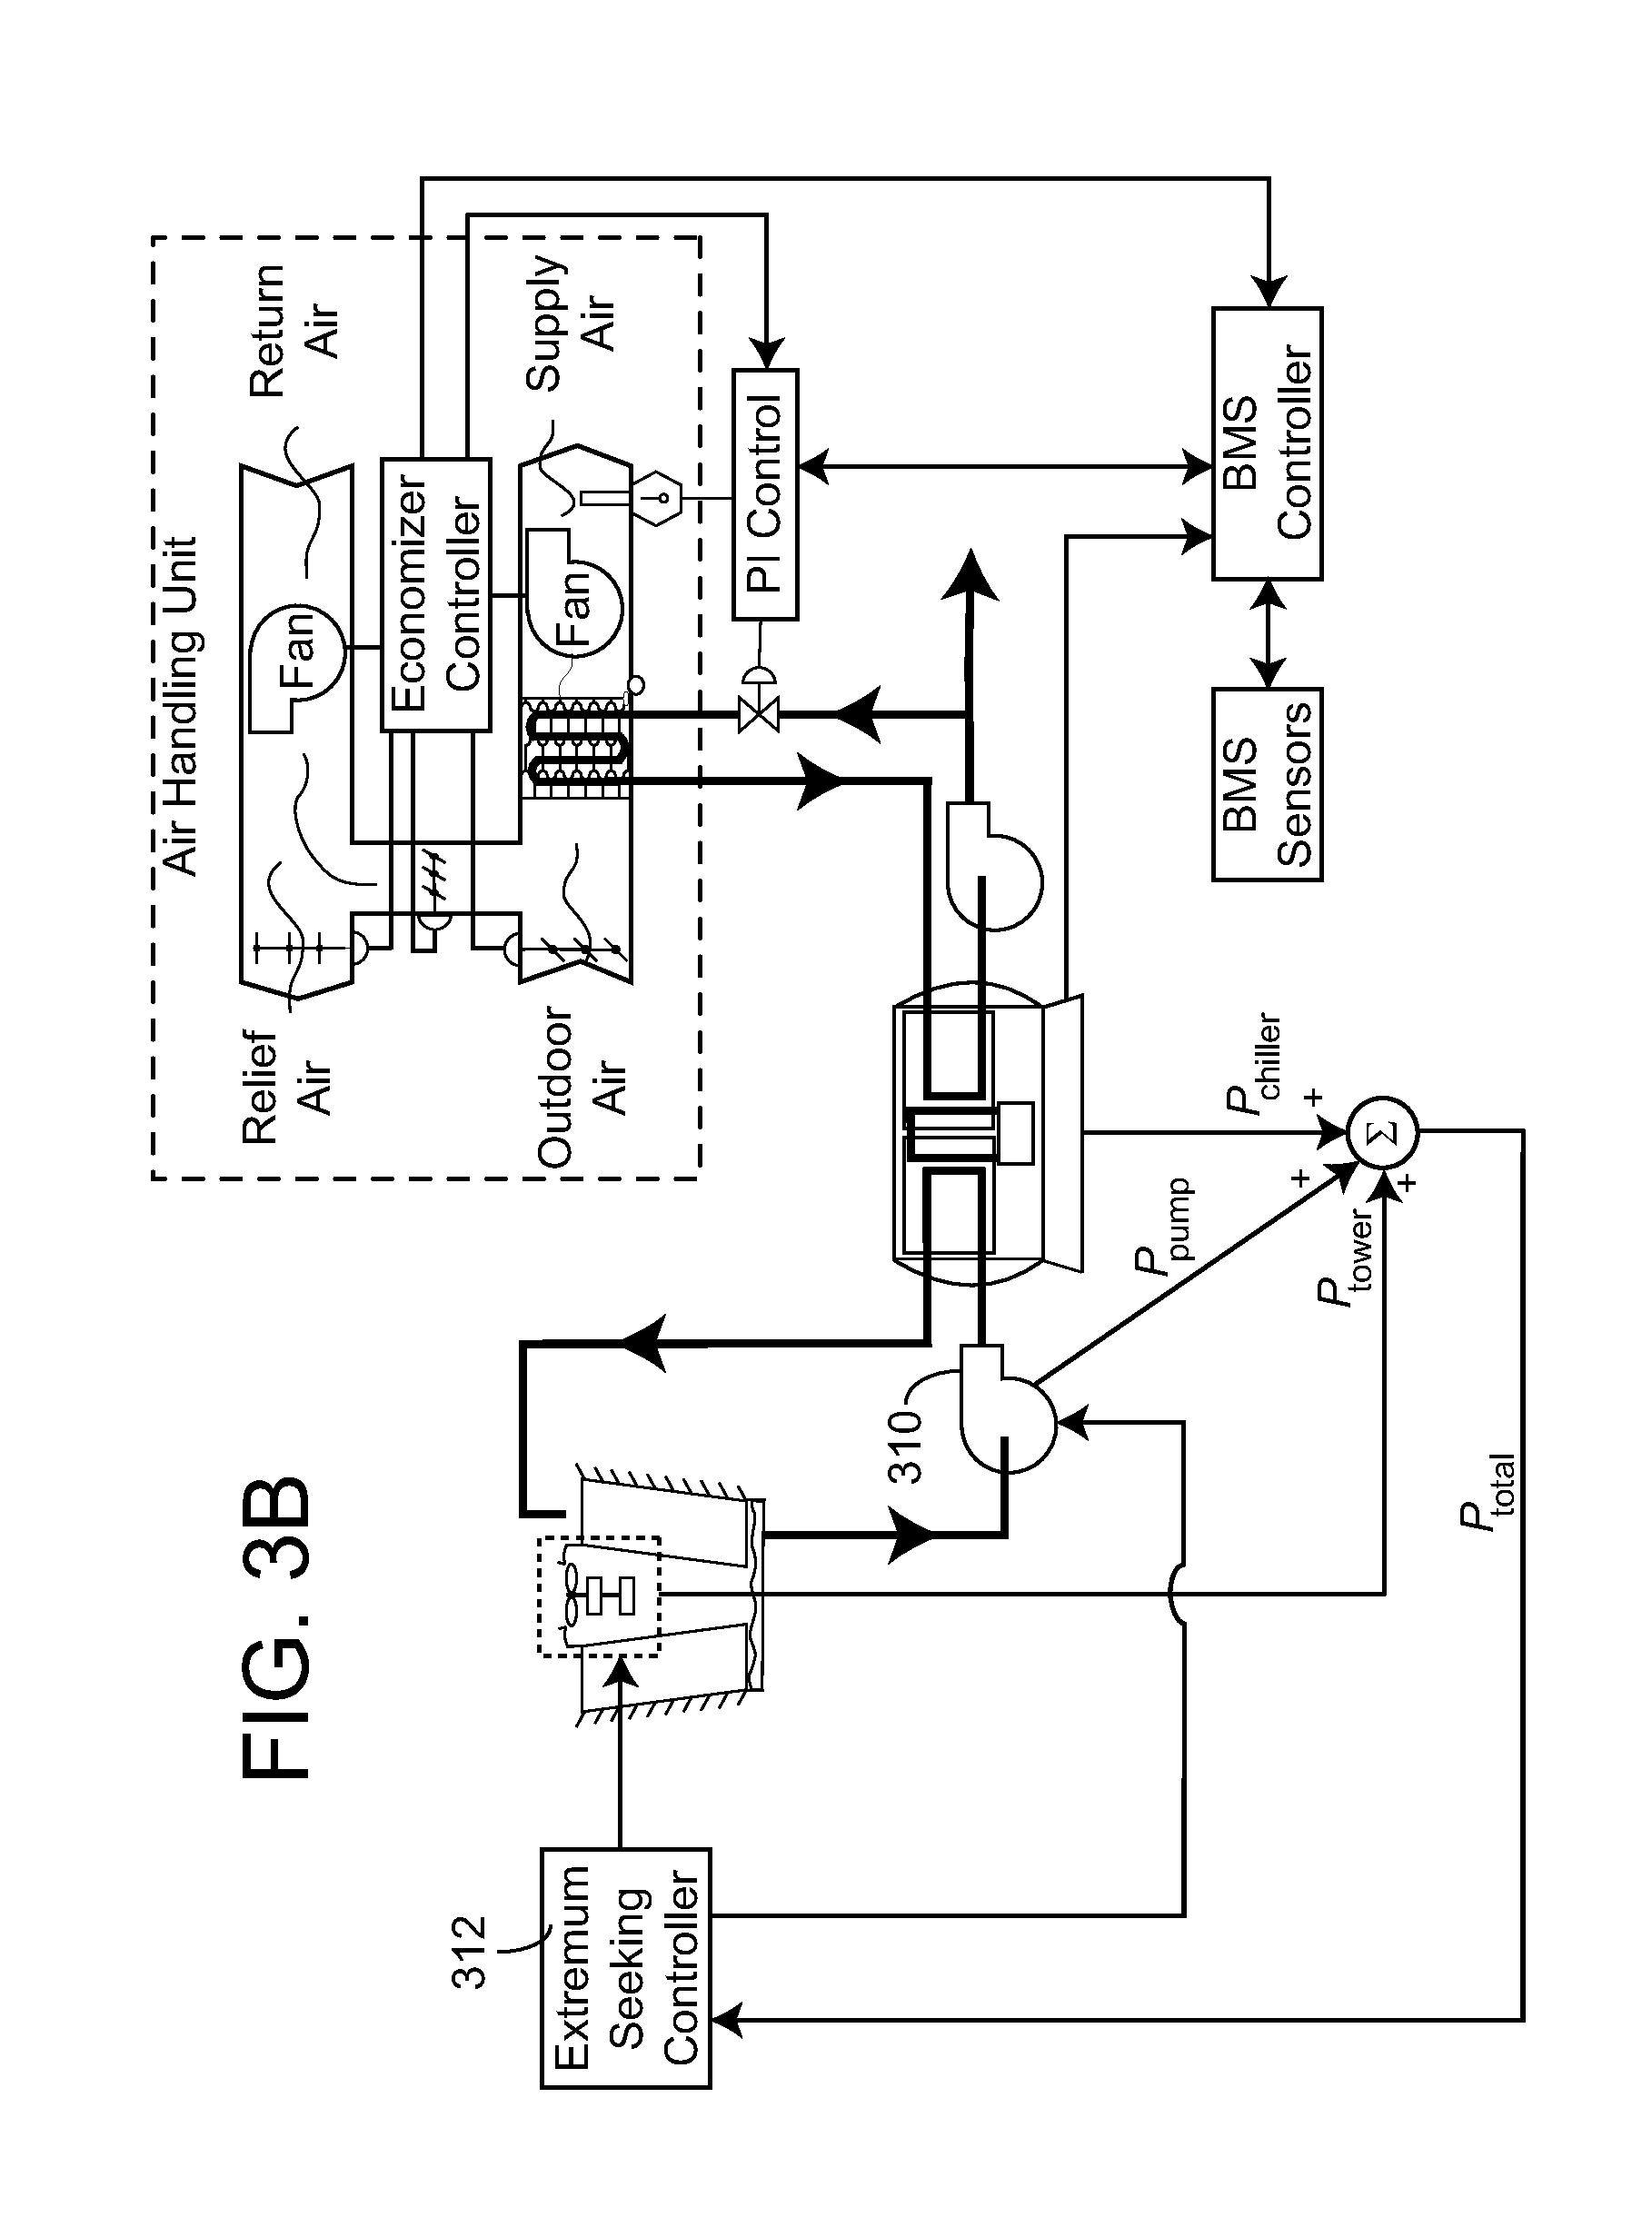 Patent Us8473080 Control Of Cooling Towers For Chilled Fluid 13 Is A Diagram An Airside Economizer On Rooftop Commercial Air Drawing